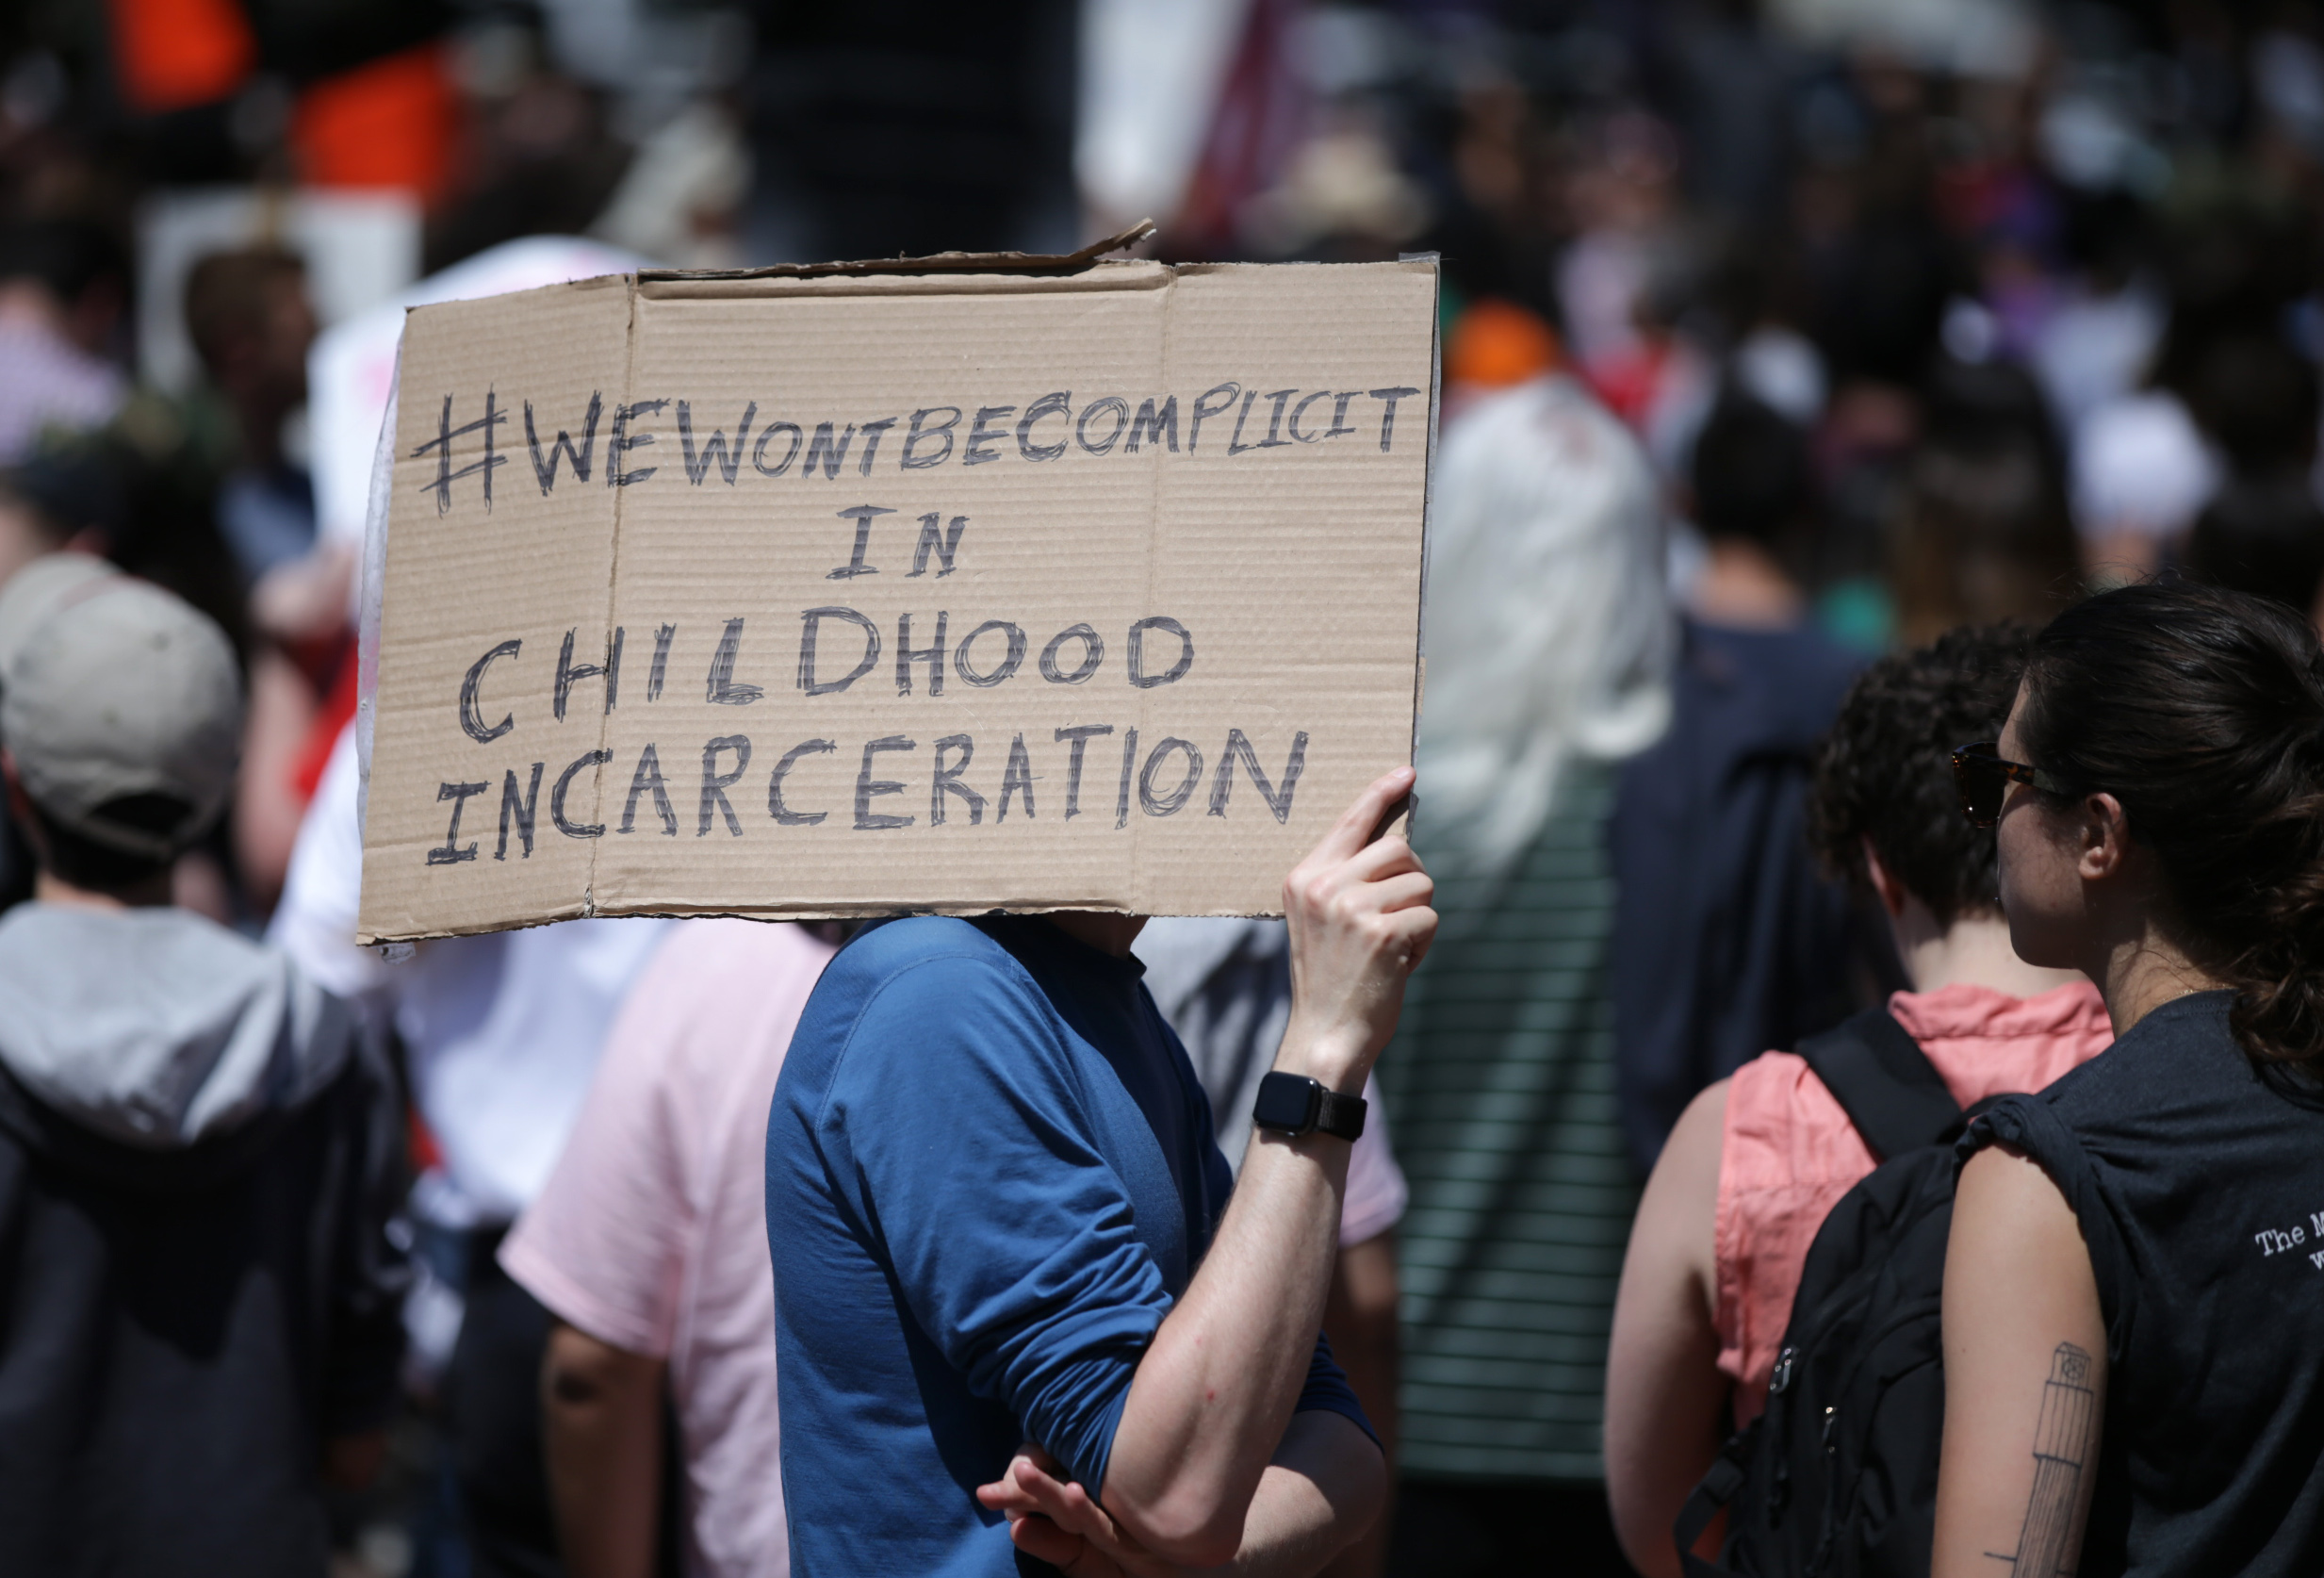 A participant carries a sign as Wayfair employees and others stage at a rally at Copley Square in Boston on June 26, 2019. On June 19, employees at Wayfair learned BCFS - a government contractor that has been managing facilities for migrant children detained at the southern US border - ordered $200,000 worth of bedroom furniture to be shipped to the site of a future 1,600-bed shelter in Carrizo Springs, Texas.